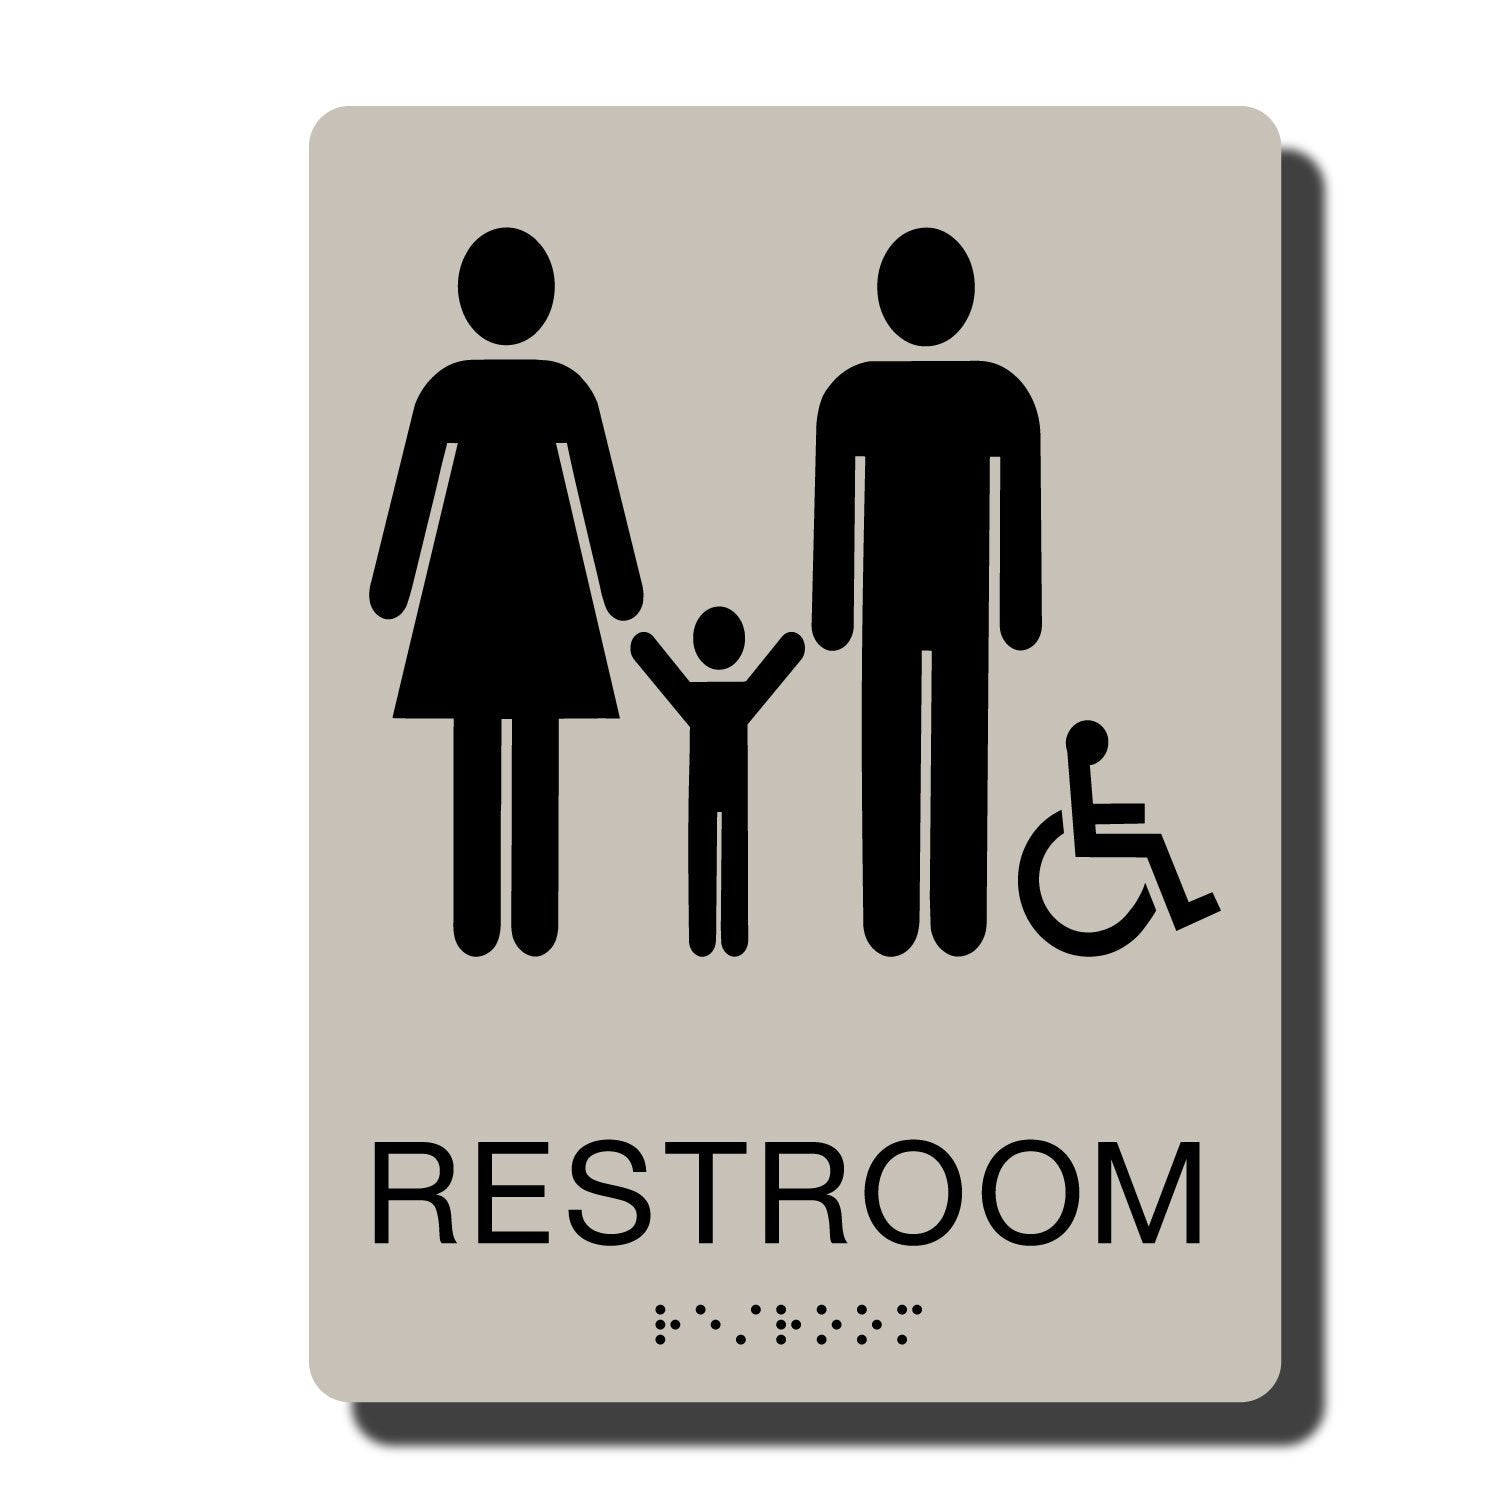 Standard ADA Sign - NapADASigns - ADA Family Handicap Restroom Sign with Braille - 14 Colors Available - 6